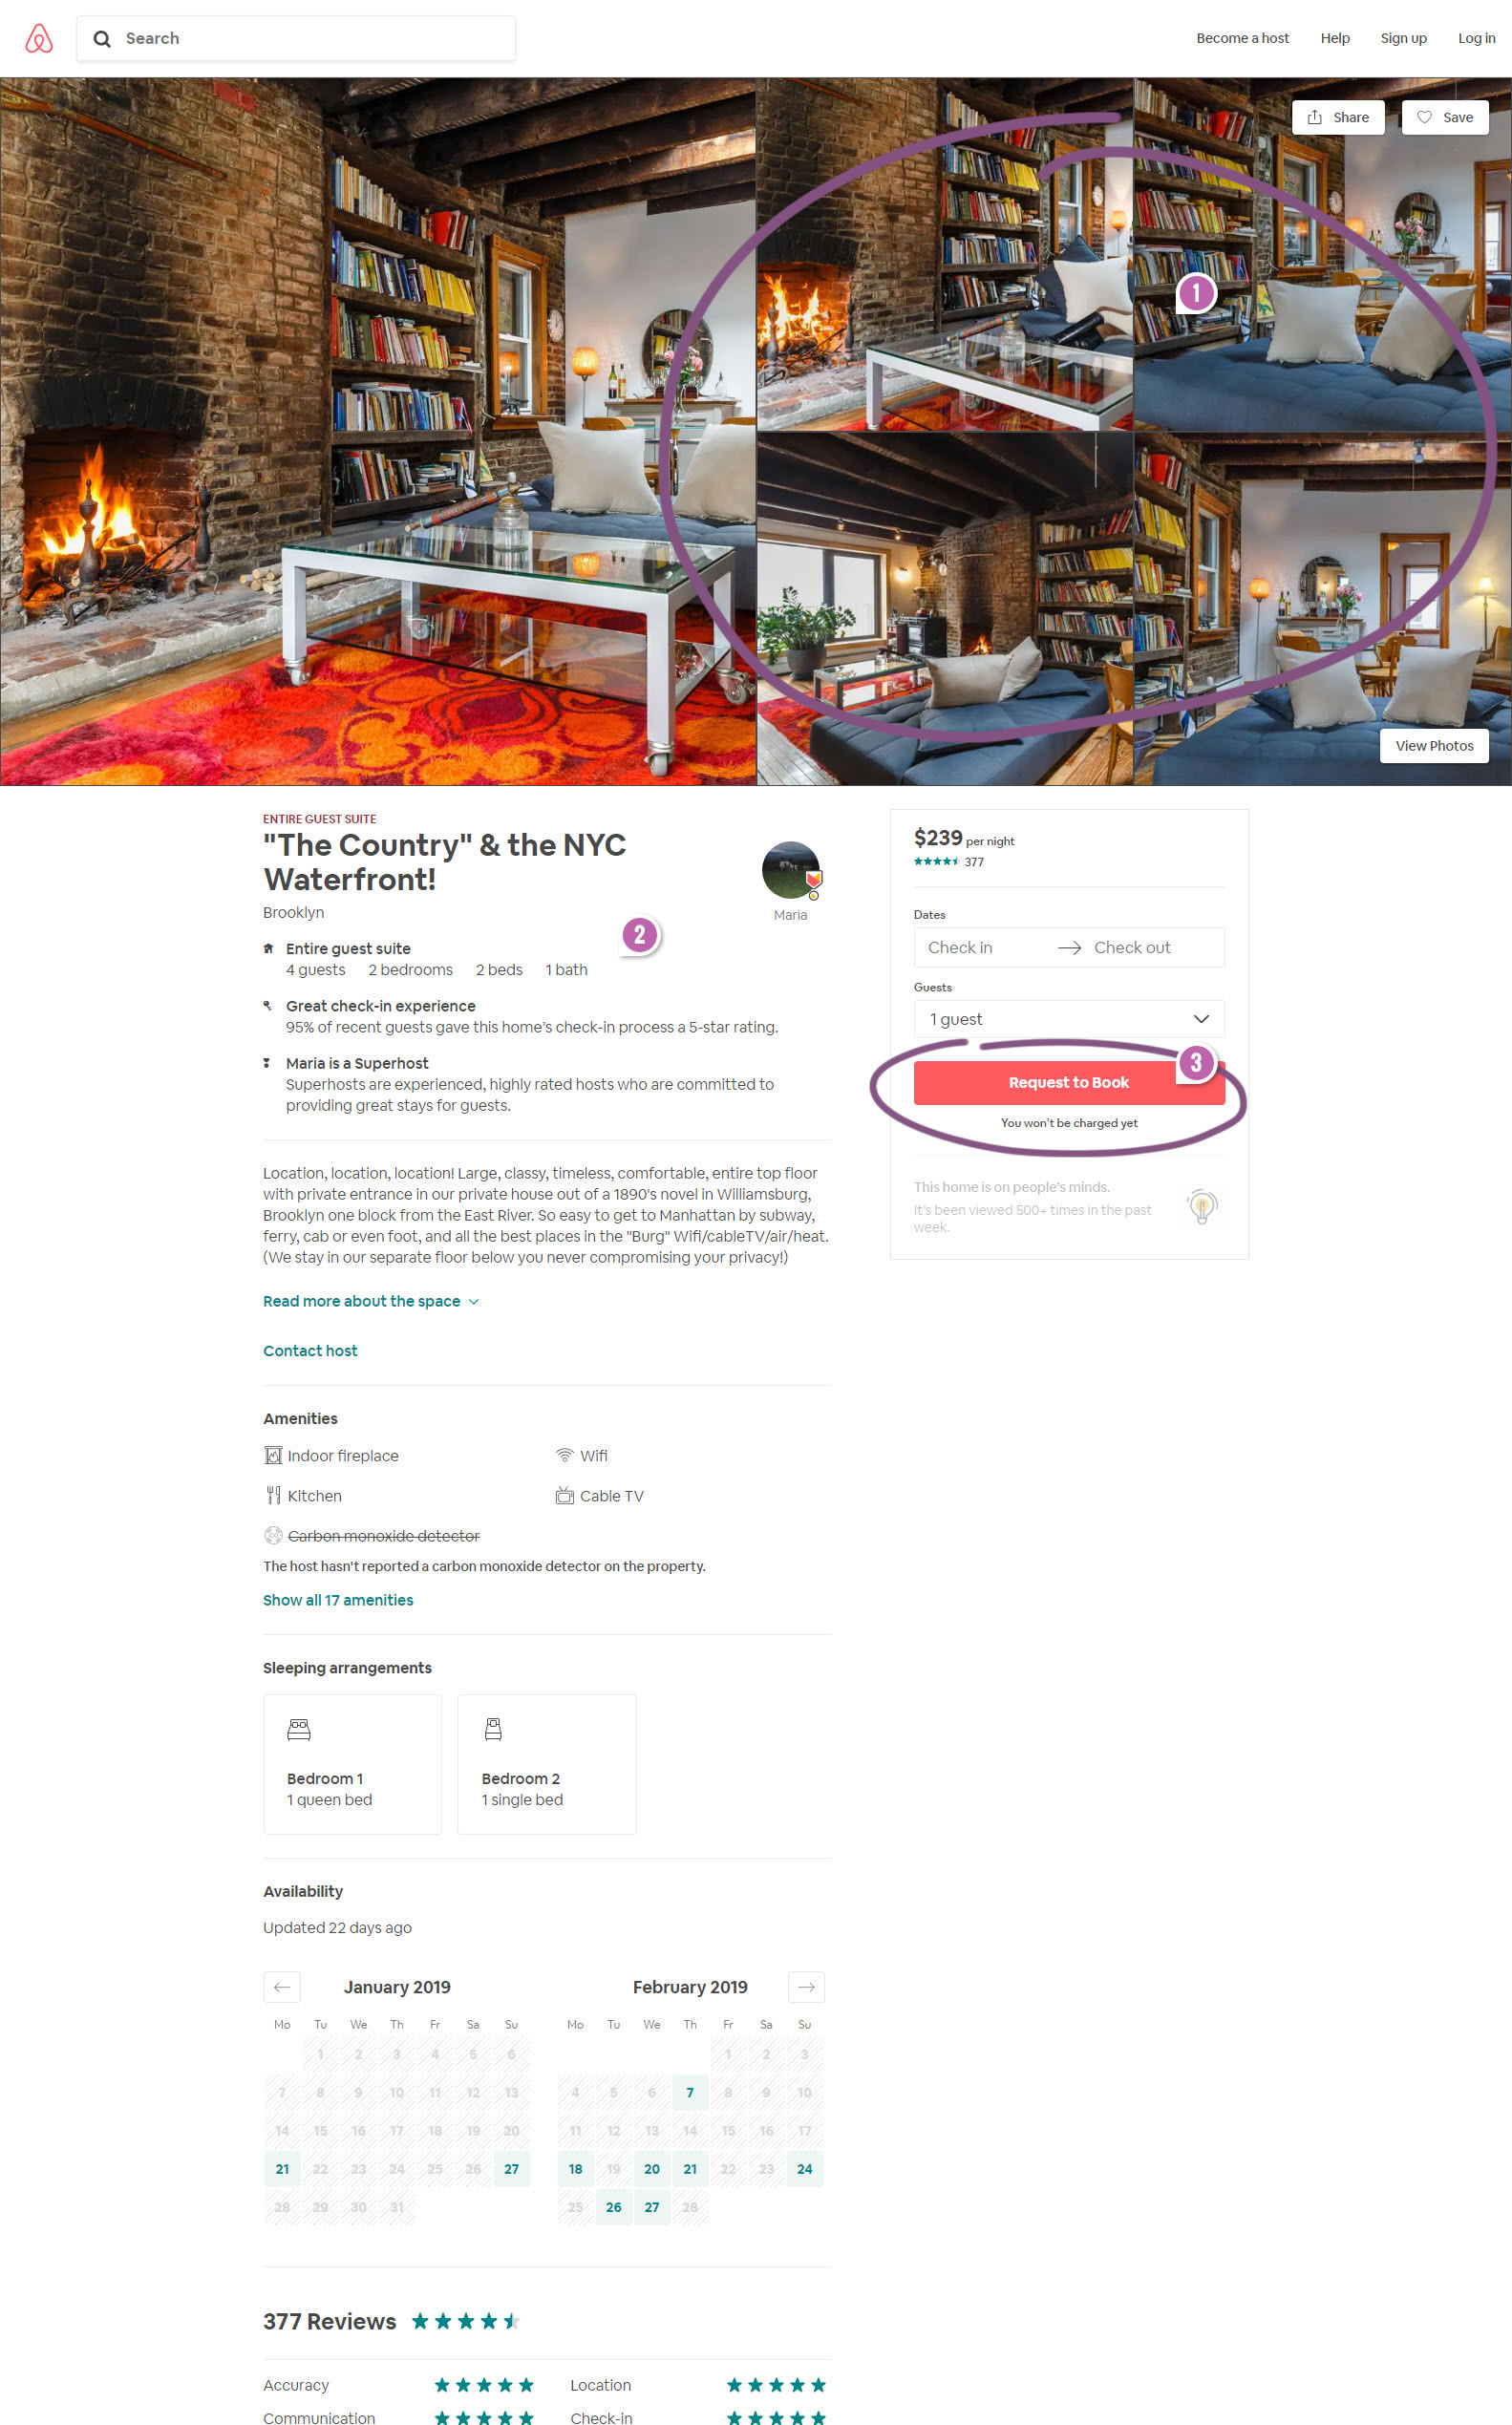 Airbnb Made 3 Changes To Their Property Page   GoodUI